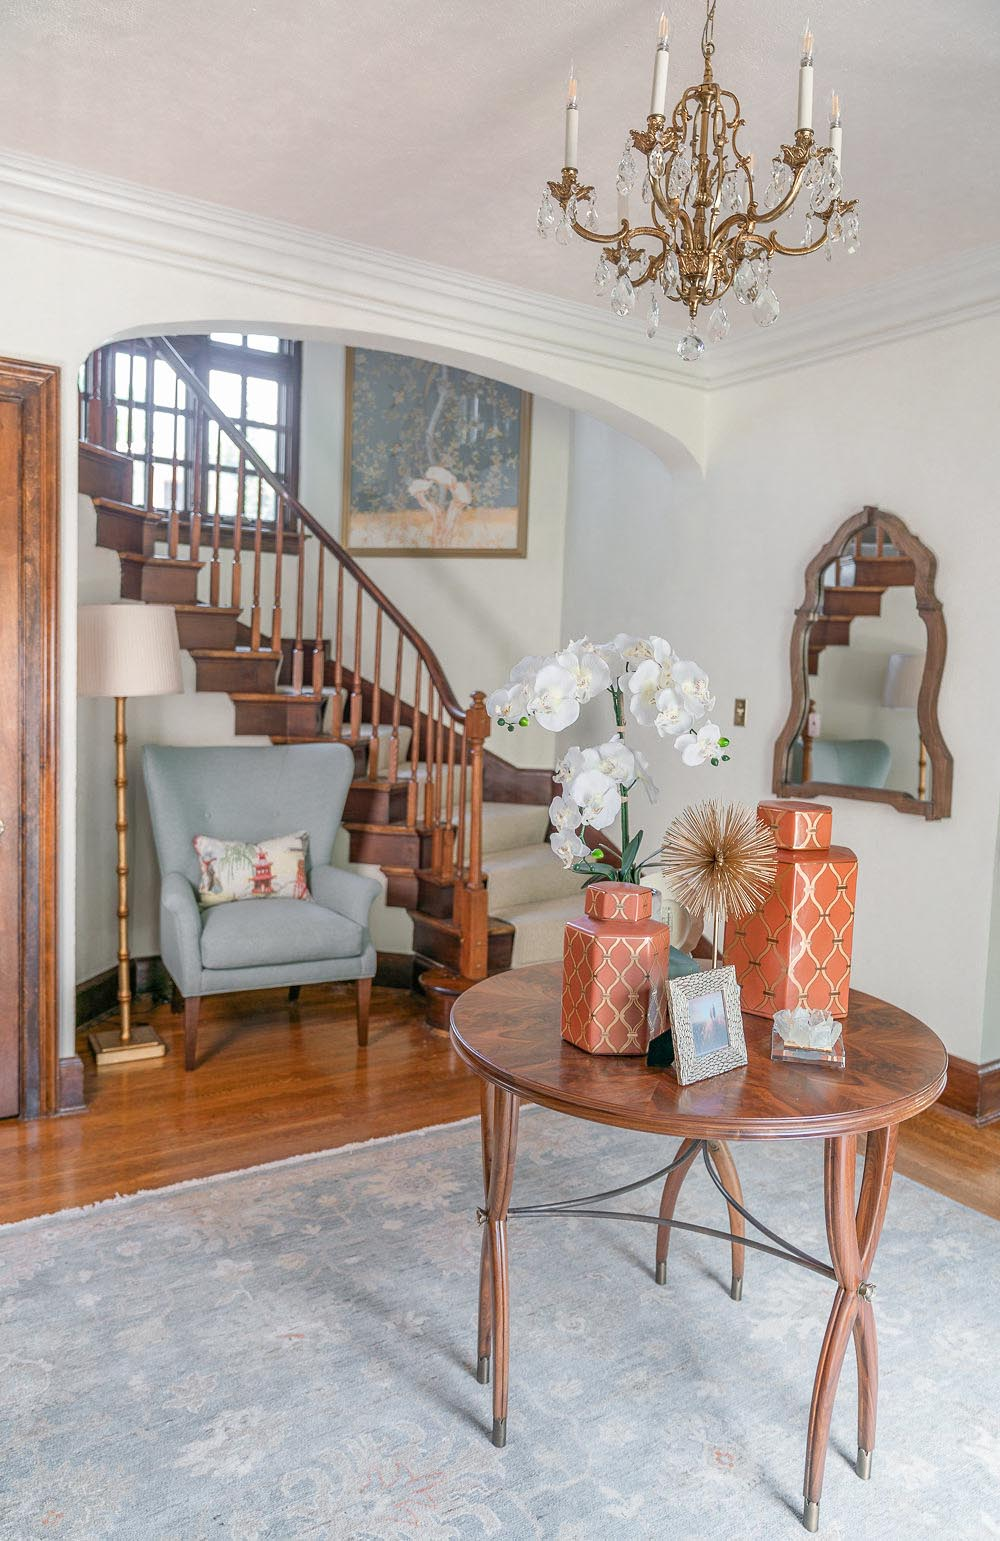 Living room with round table, chandelier and stair